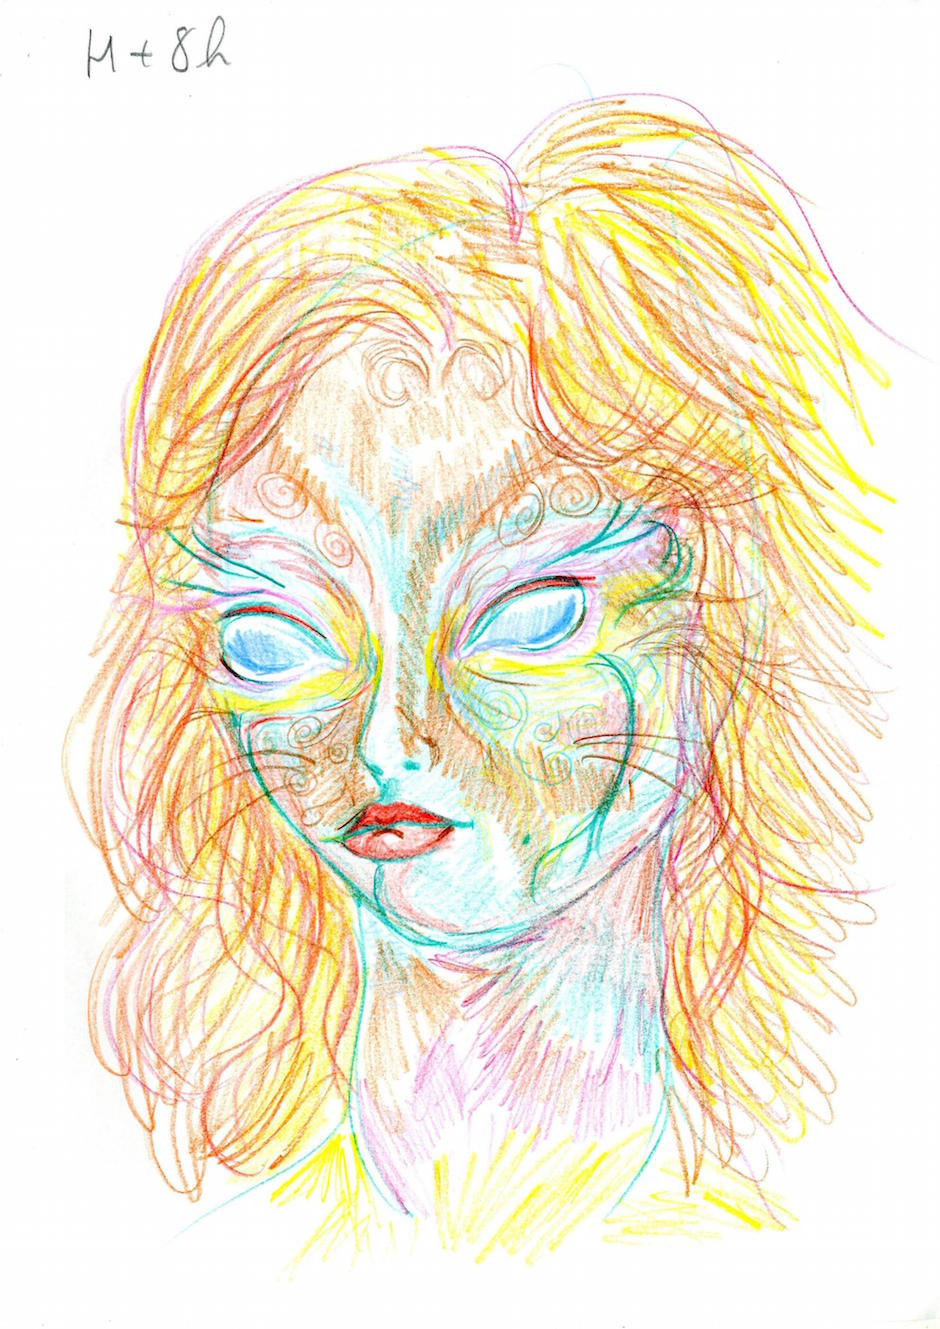 H + 8h After 45 minutes in the dark, listening to some Pink Floyd, she started to draw again.